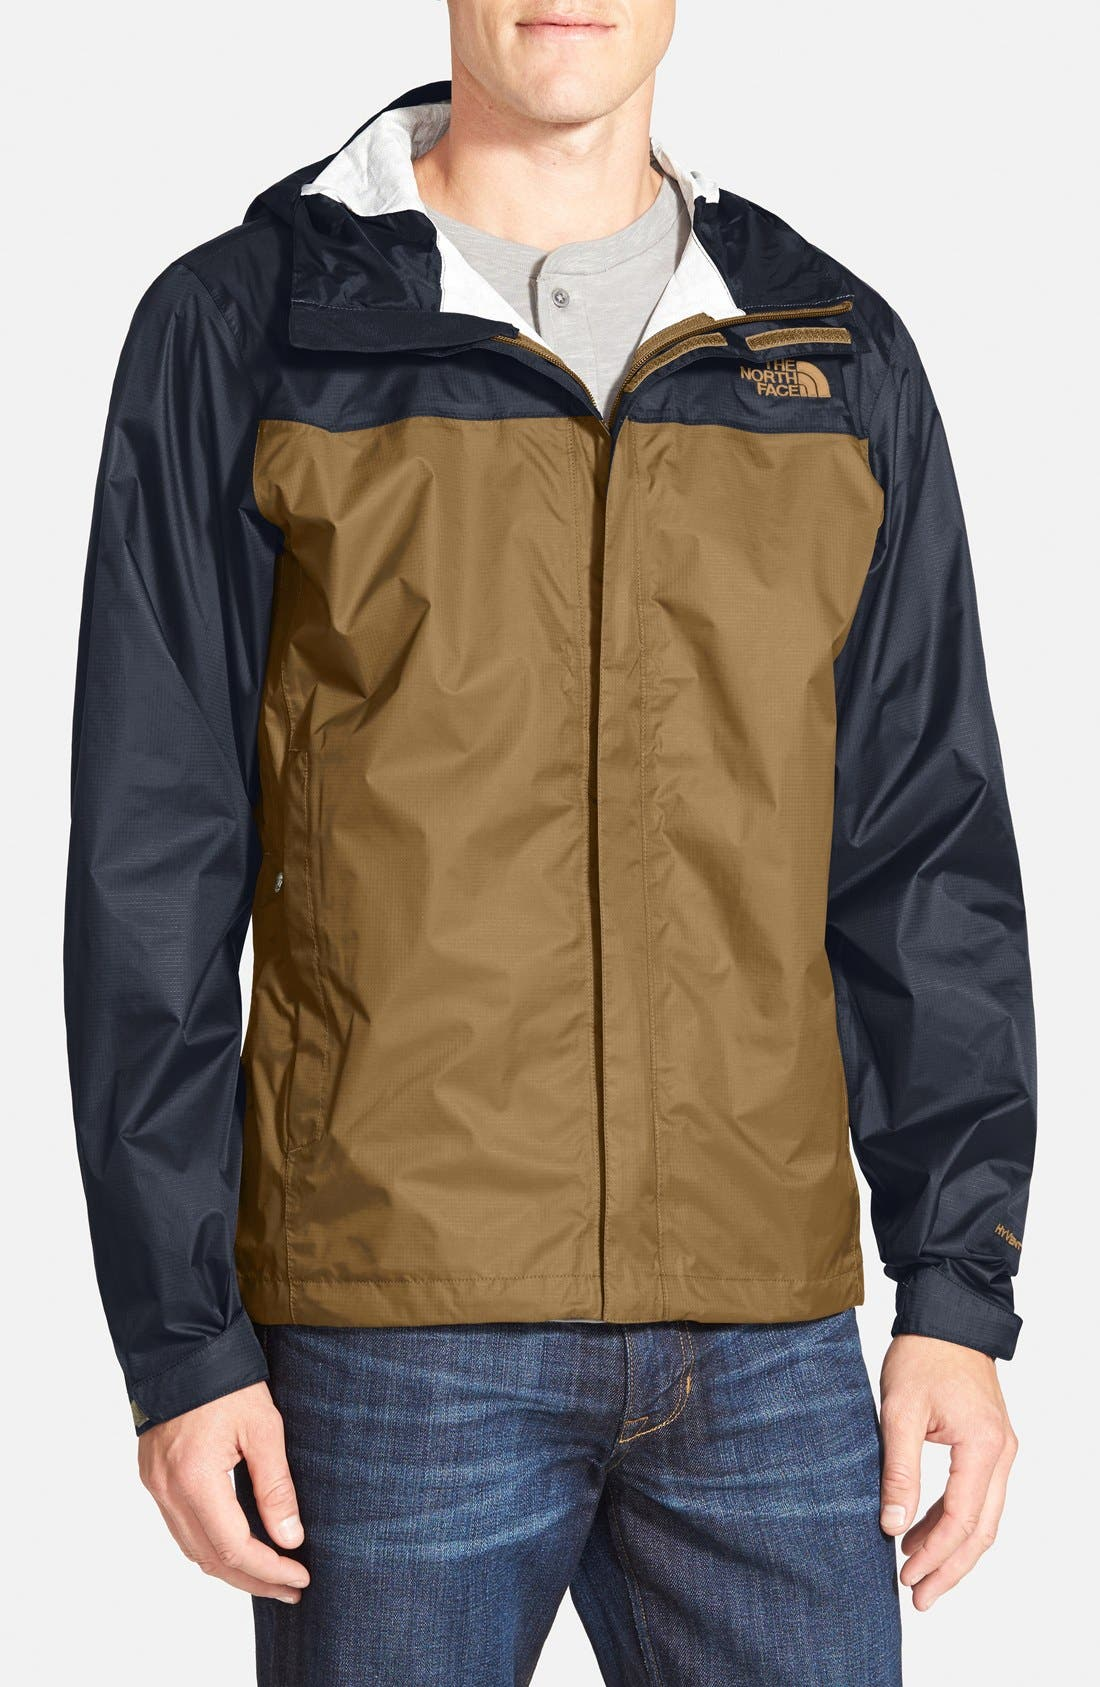 Venture Waterproof Jacket,                             Main thumbnail 1, color,                             Dijon Brown/ Urban Navy